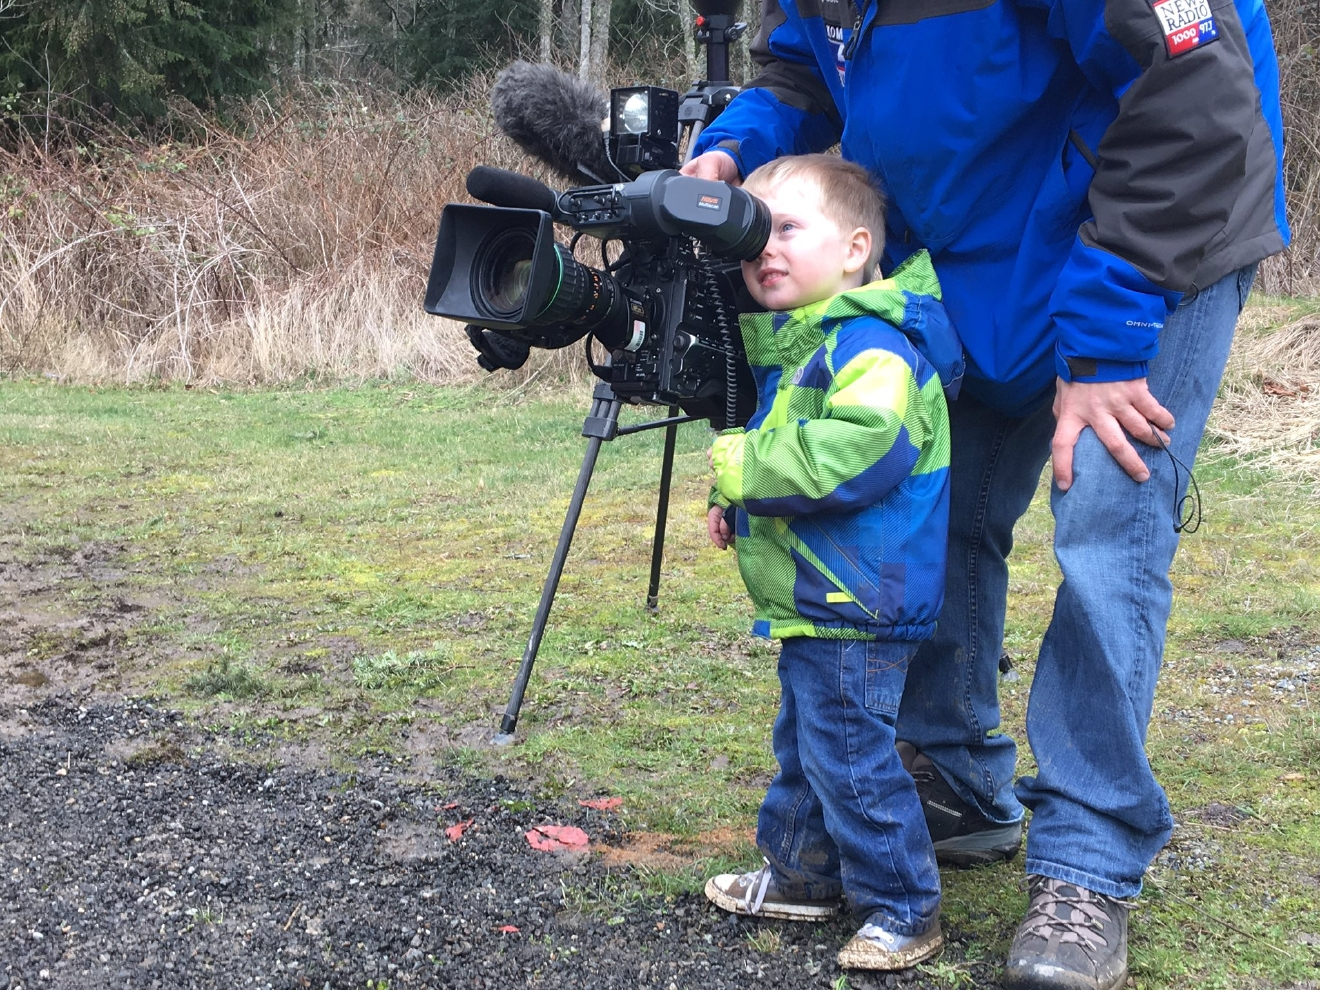 Wyatt has many skills: he coasts & now is a photojournalist-in-training! (Photo: KOMO News)